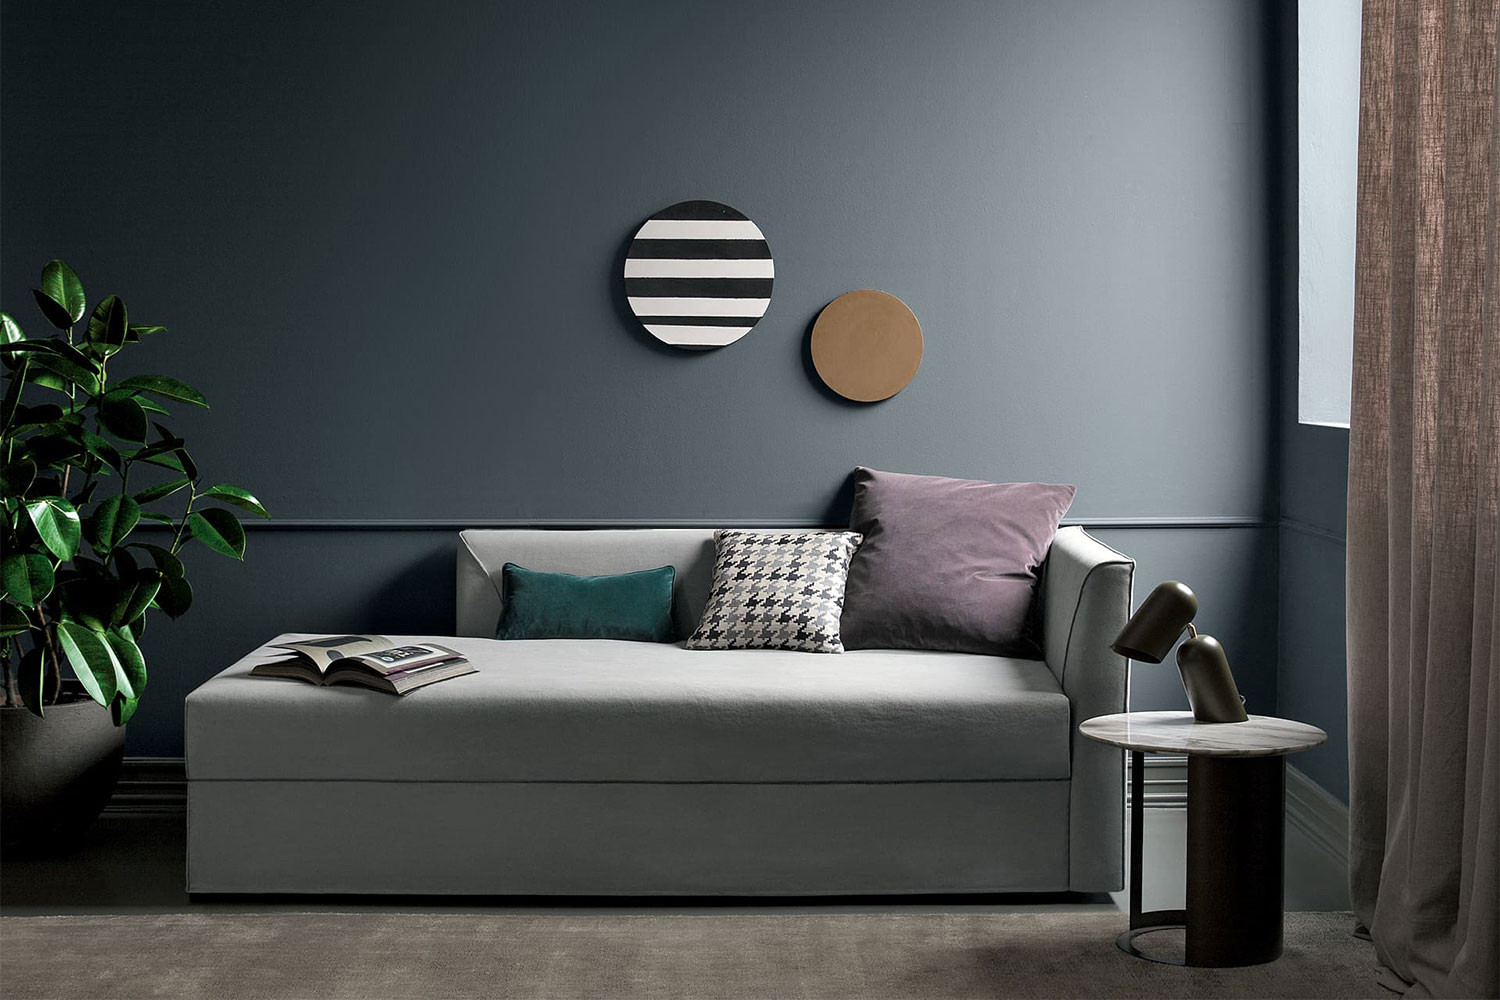 Upholstered trundle daybed, a sofa with a second pull-out bed